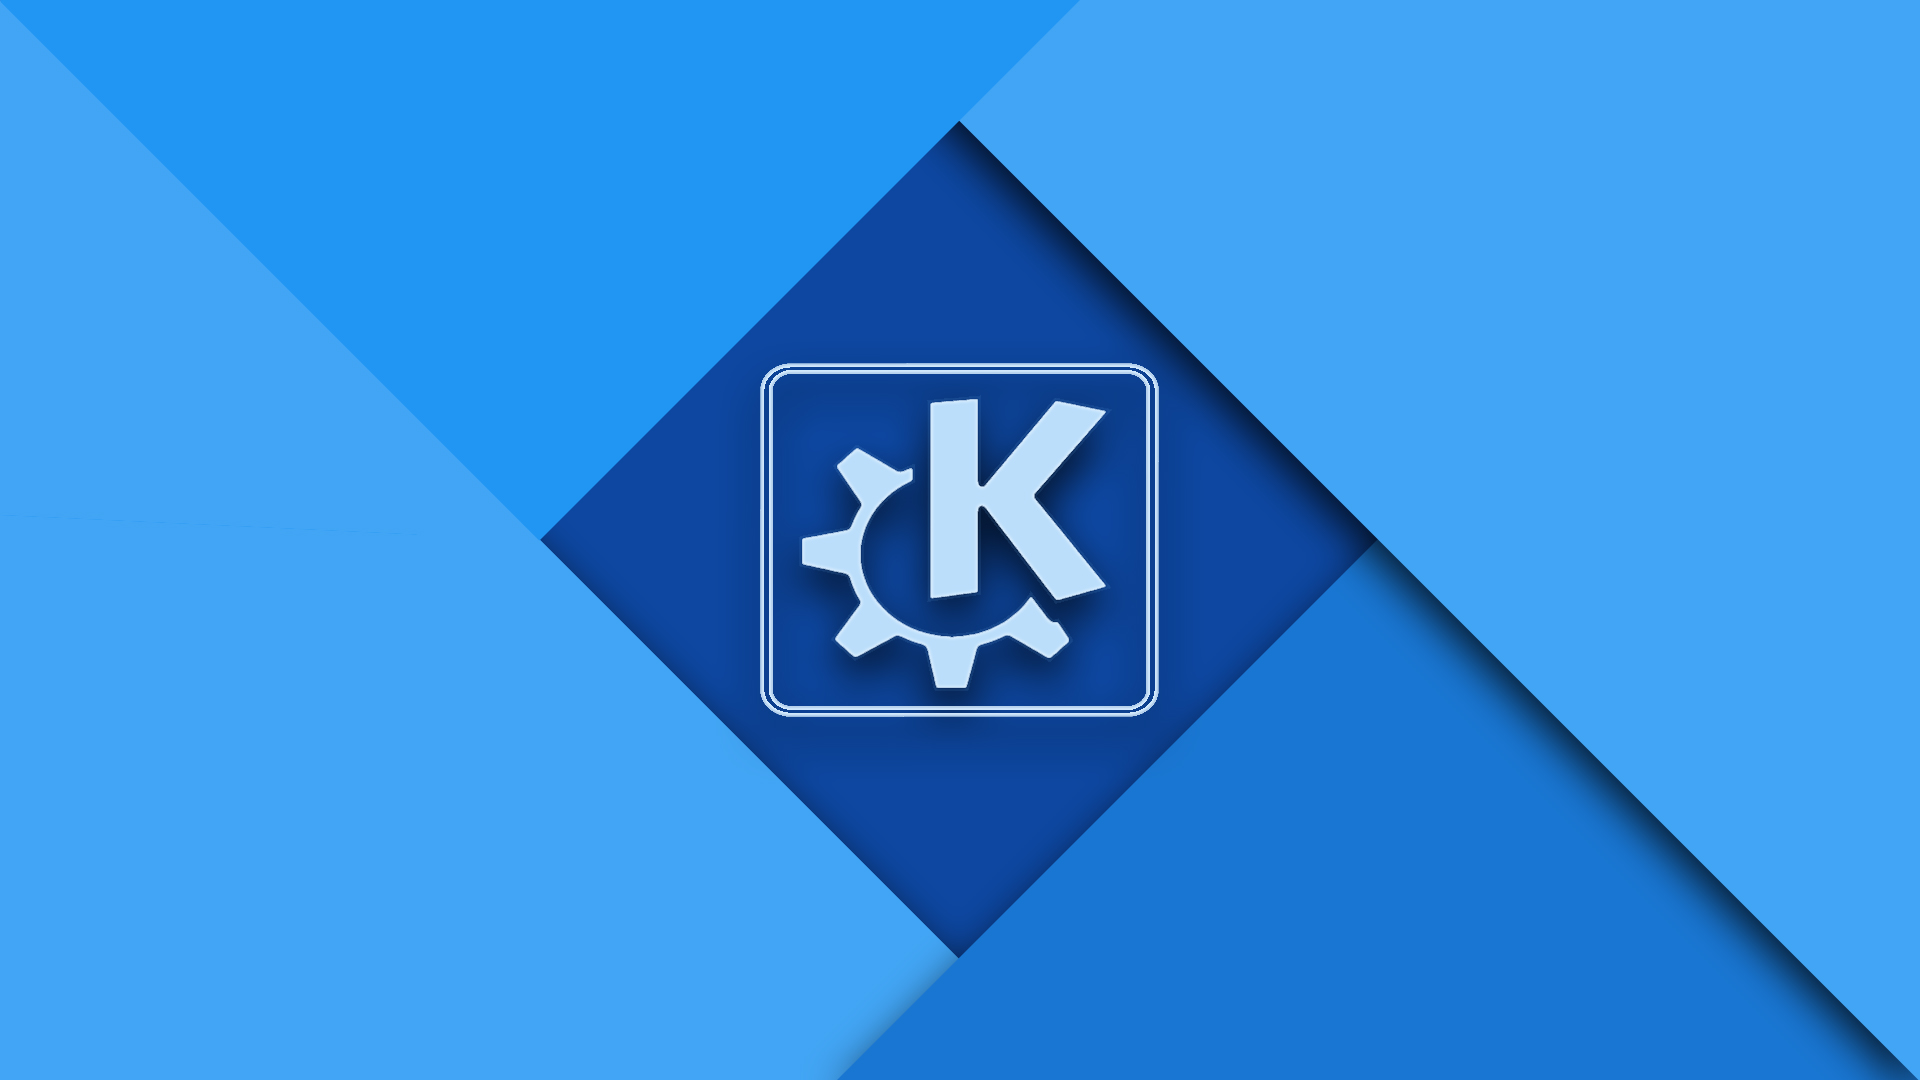 This Week in KDE, Part 5 : Slider Bug Fix, Libinput UI on X11